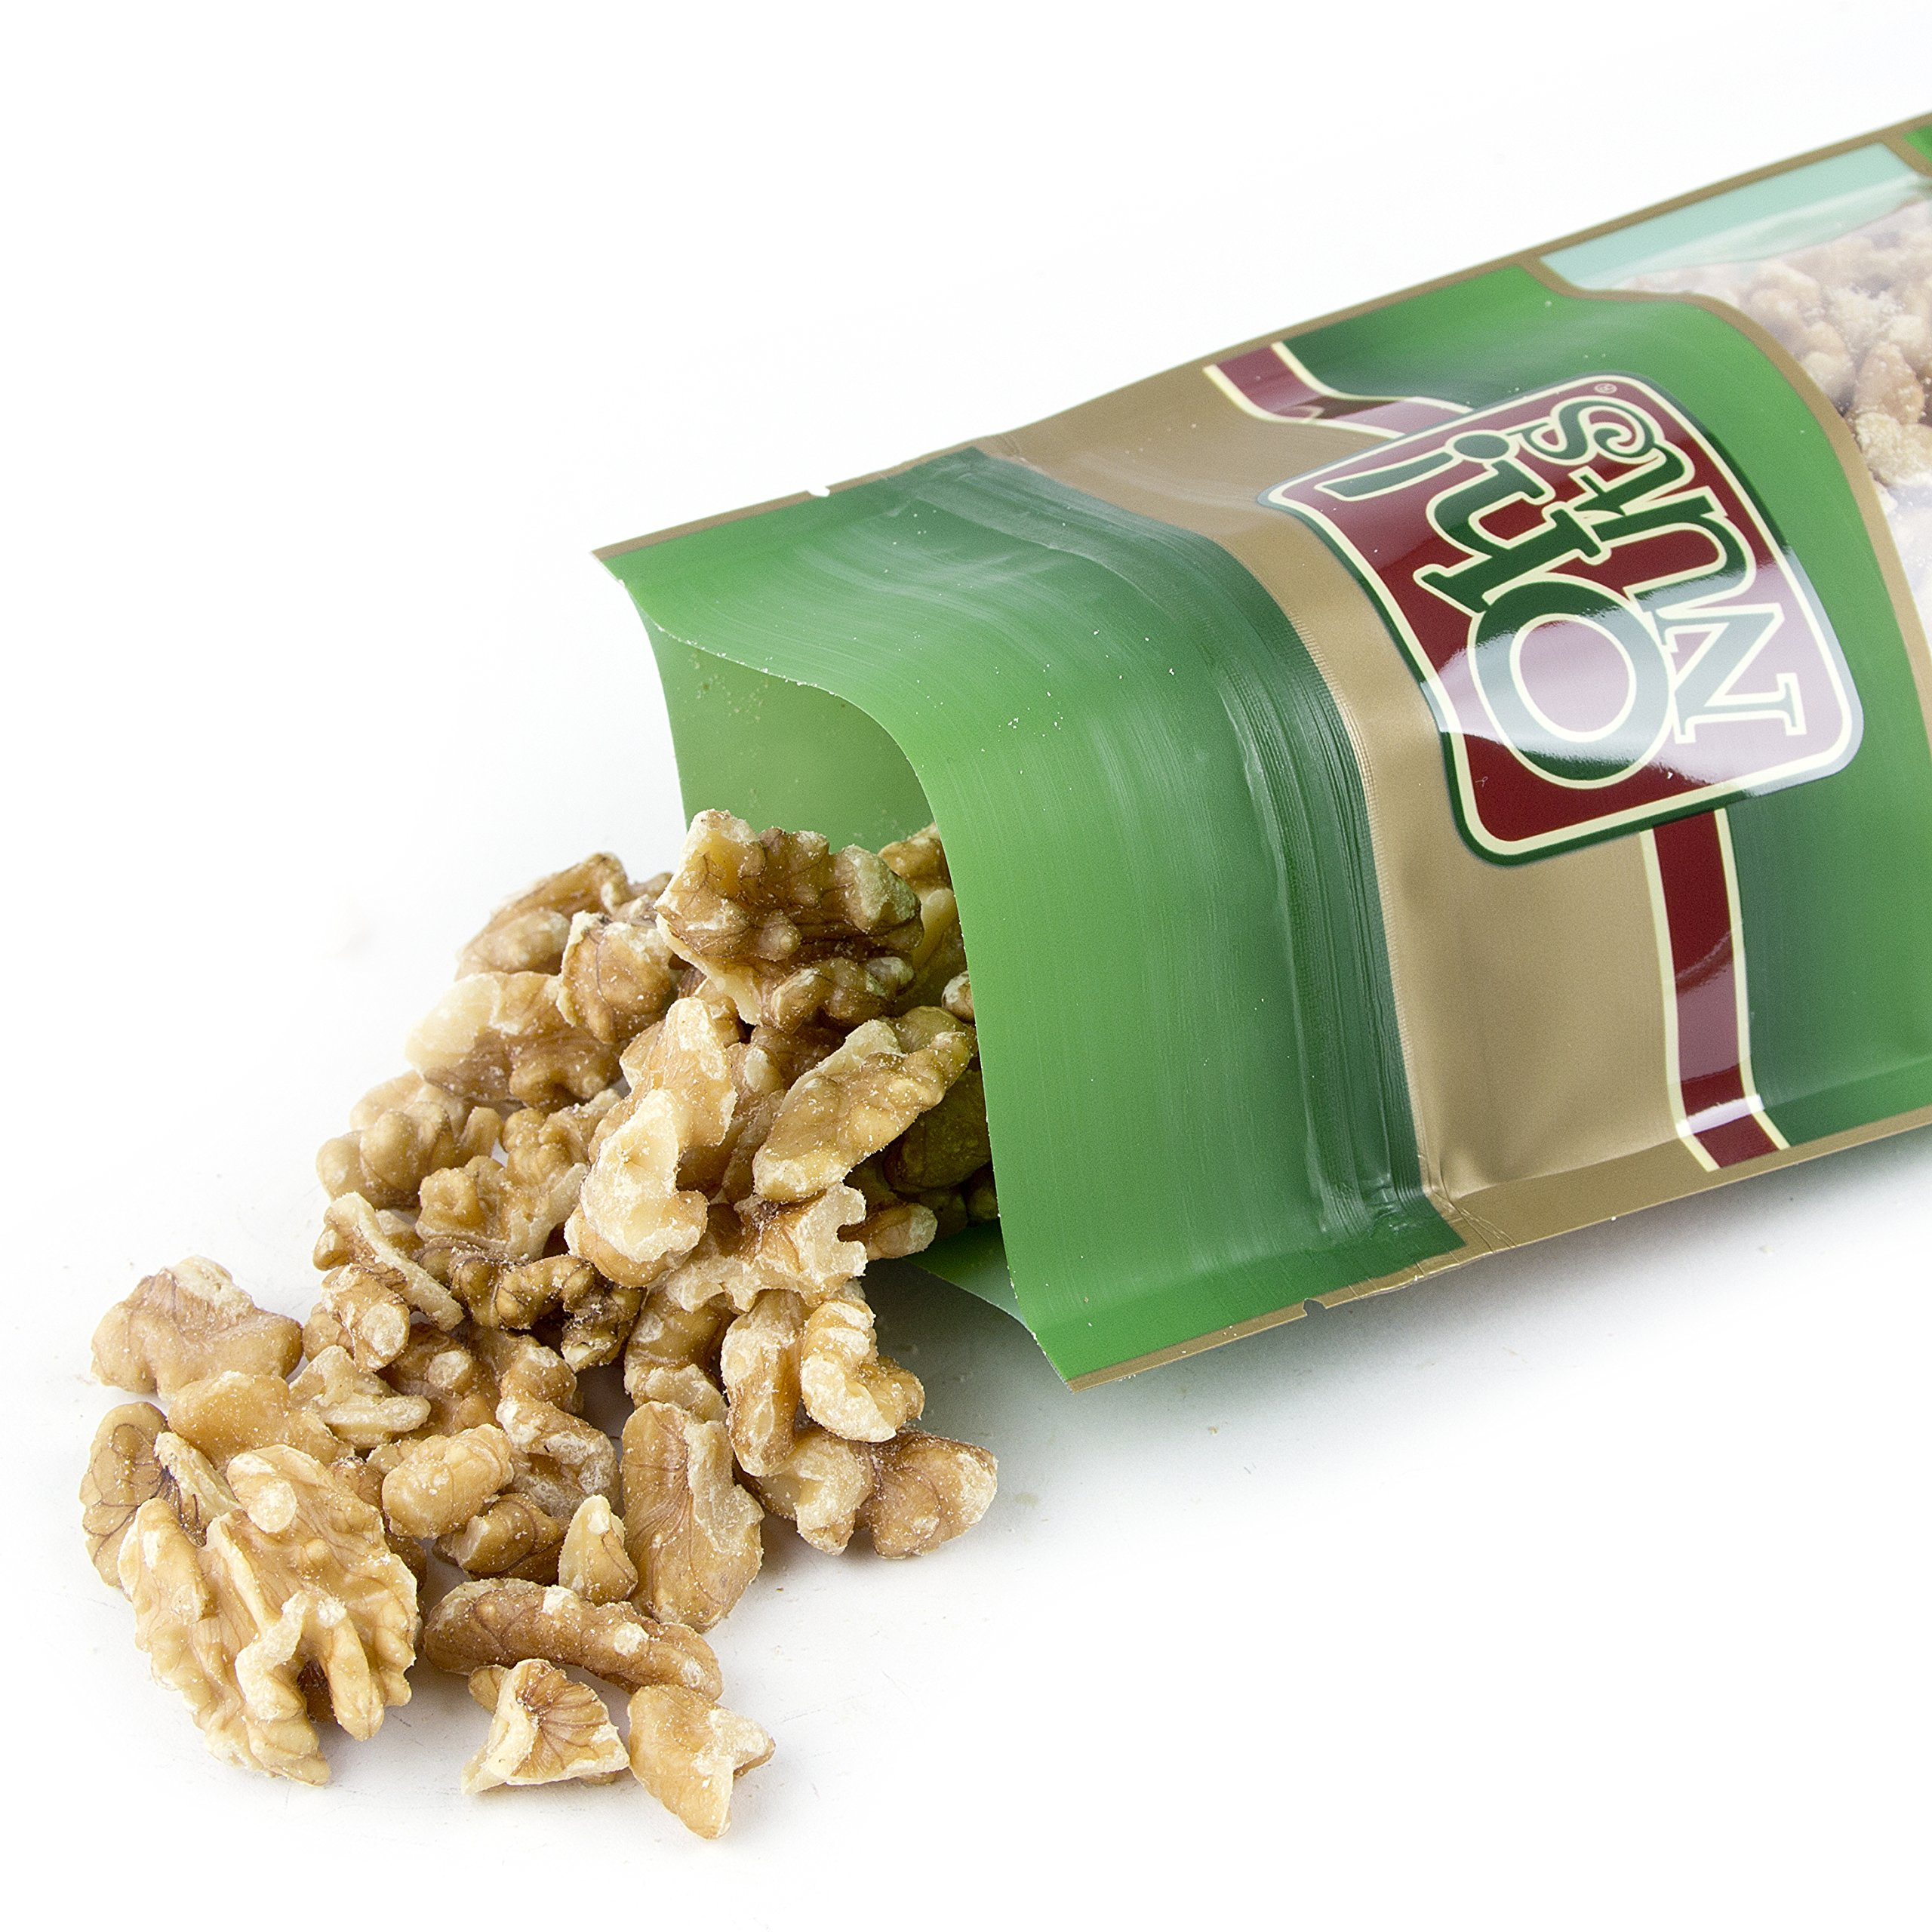 All Natural Walnuts Dry Roasted Unsalted, Walnuts Freshly Roasted Unsalted, No Oils Added - Oh! Nuts (2 Pound Bag) by Oh! Nuts®